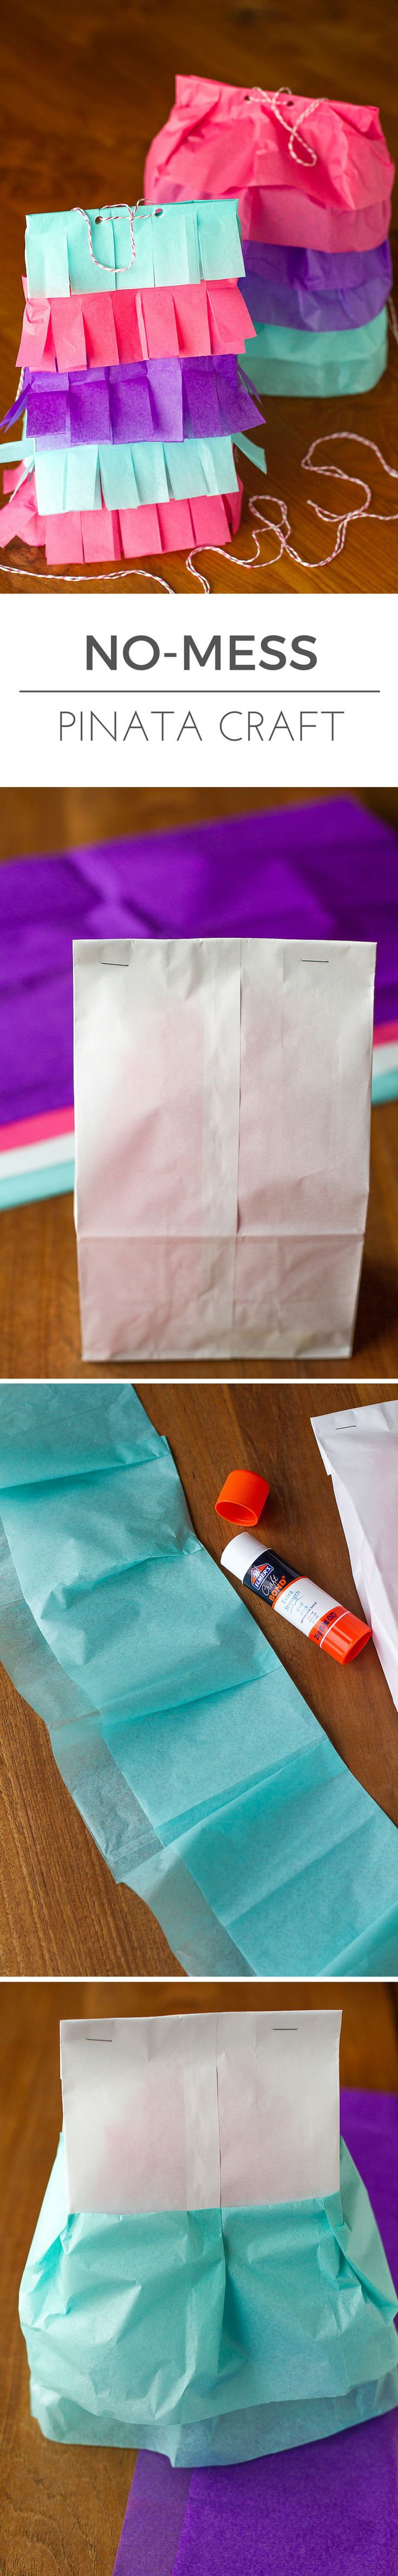 No-Mess Piñata Craft -- this mess-free paper bag pinata craft is perfect for rainy days and birthdays alike! No messy balloons with gloppy flour paste and newspaper, so your kitchen stays clean. | via @unsophisticook on unsophisticook.com